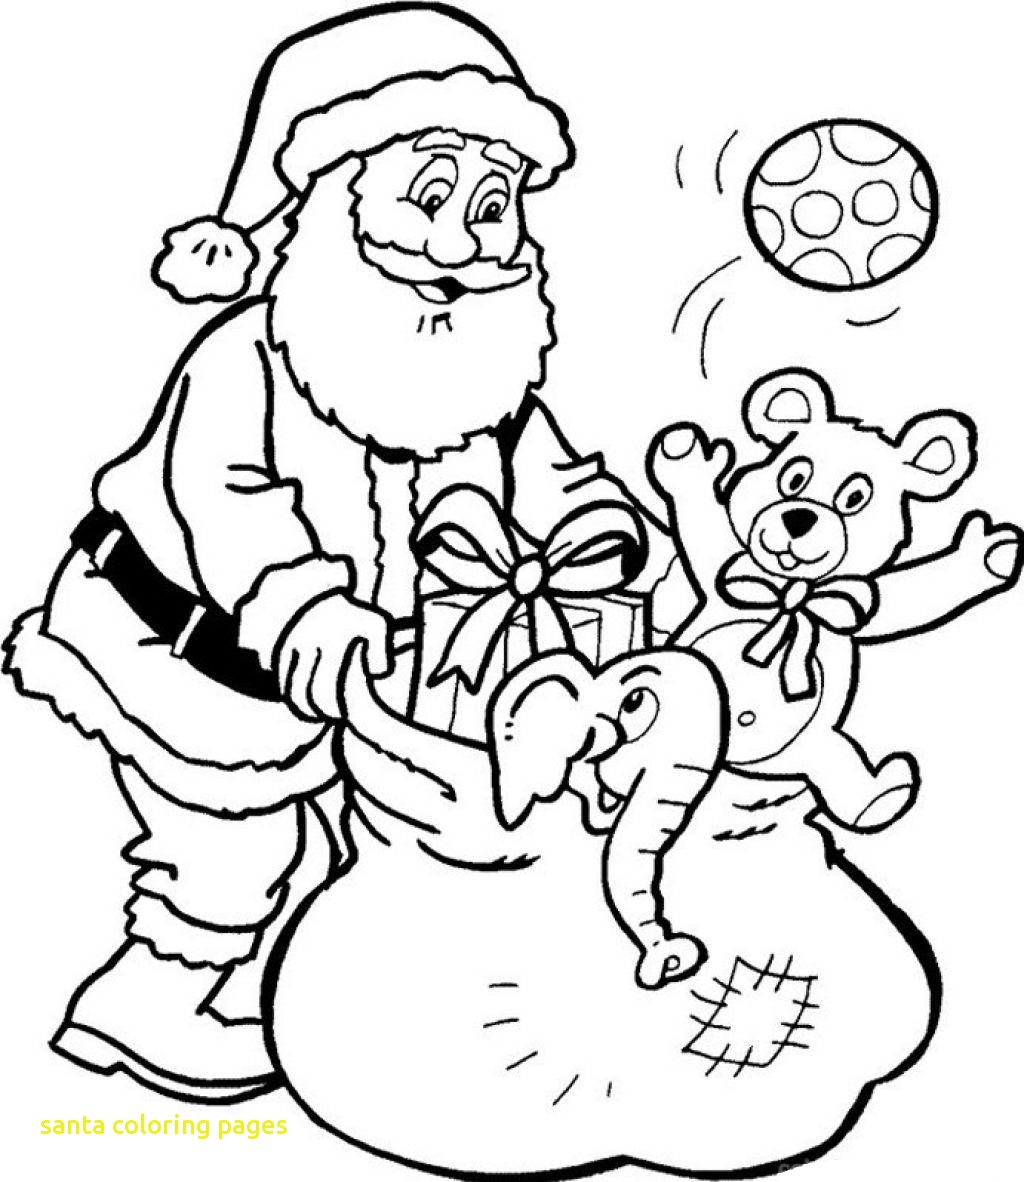 Santa Drawing Easy at GetDrawings.com | Free for personal use Santa ...